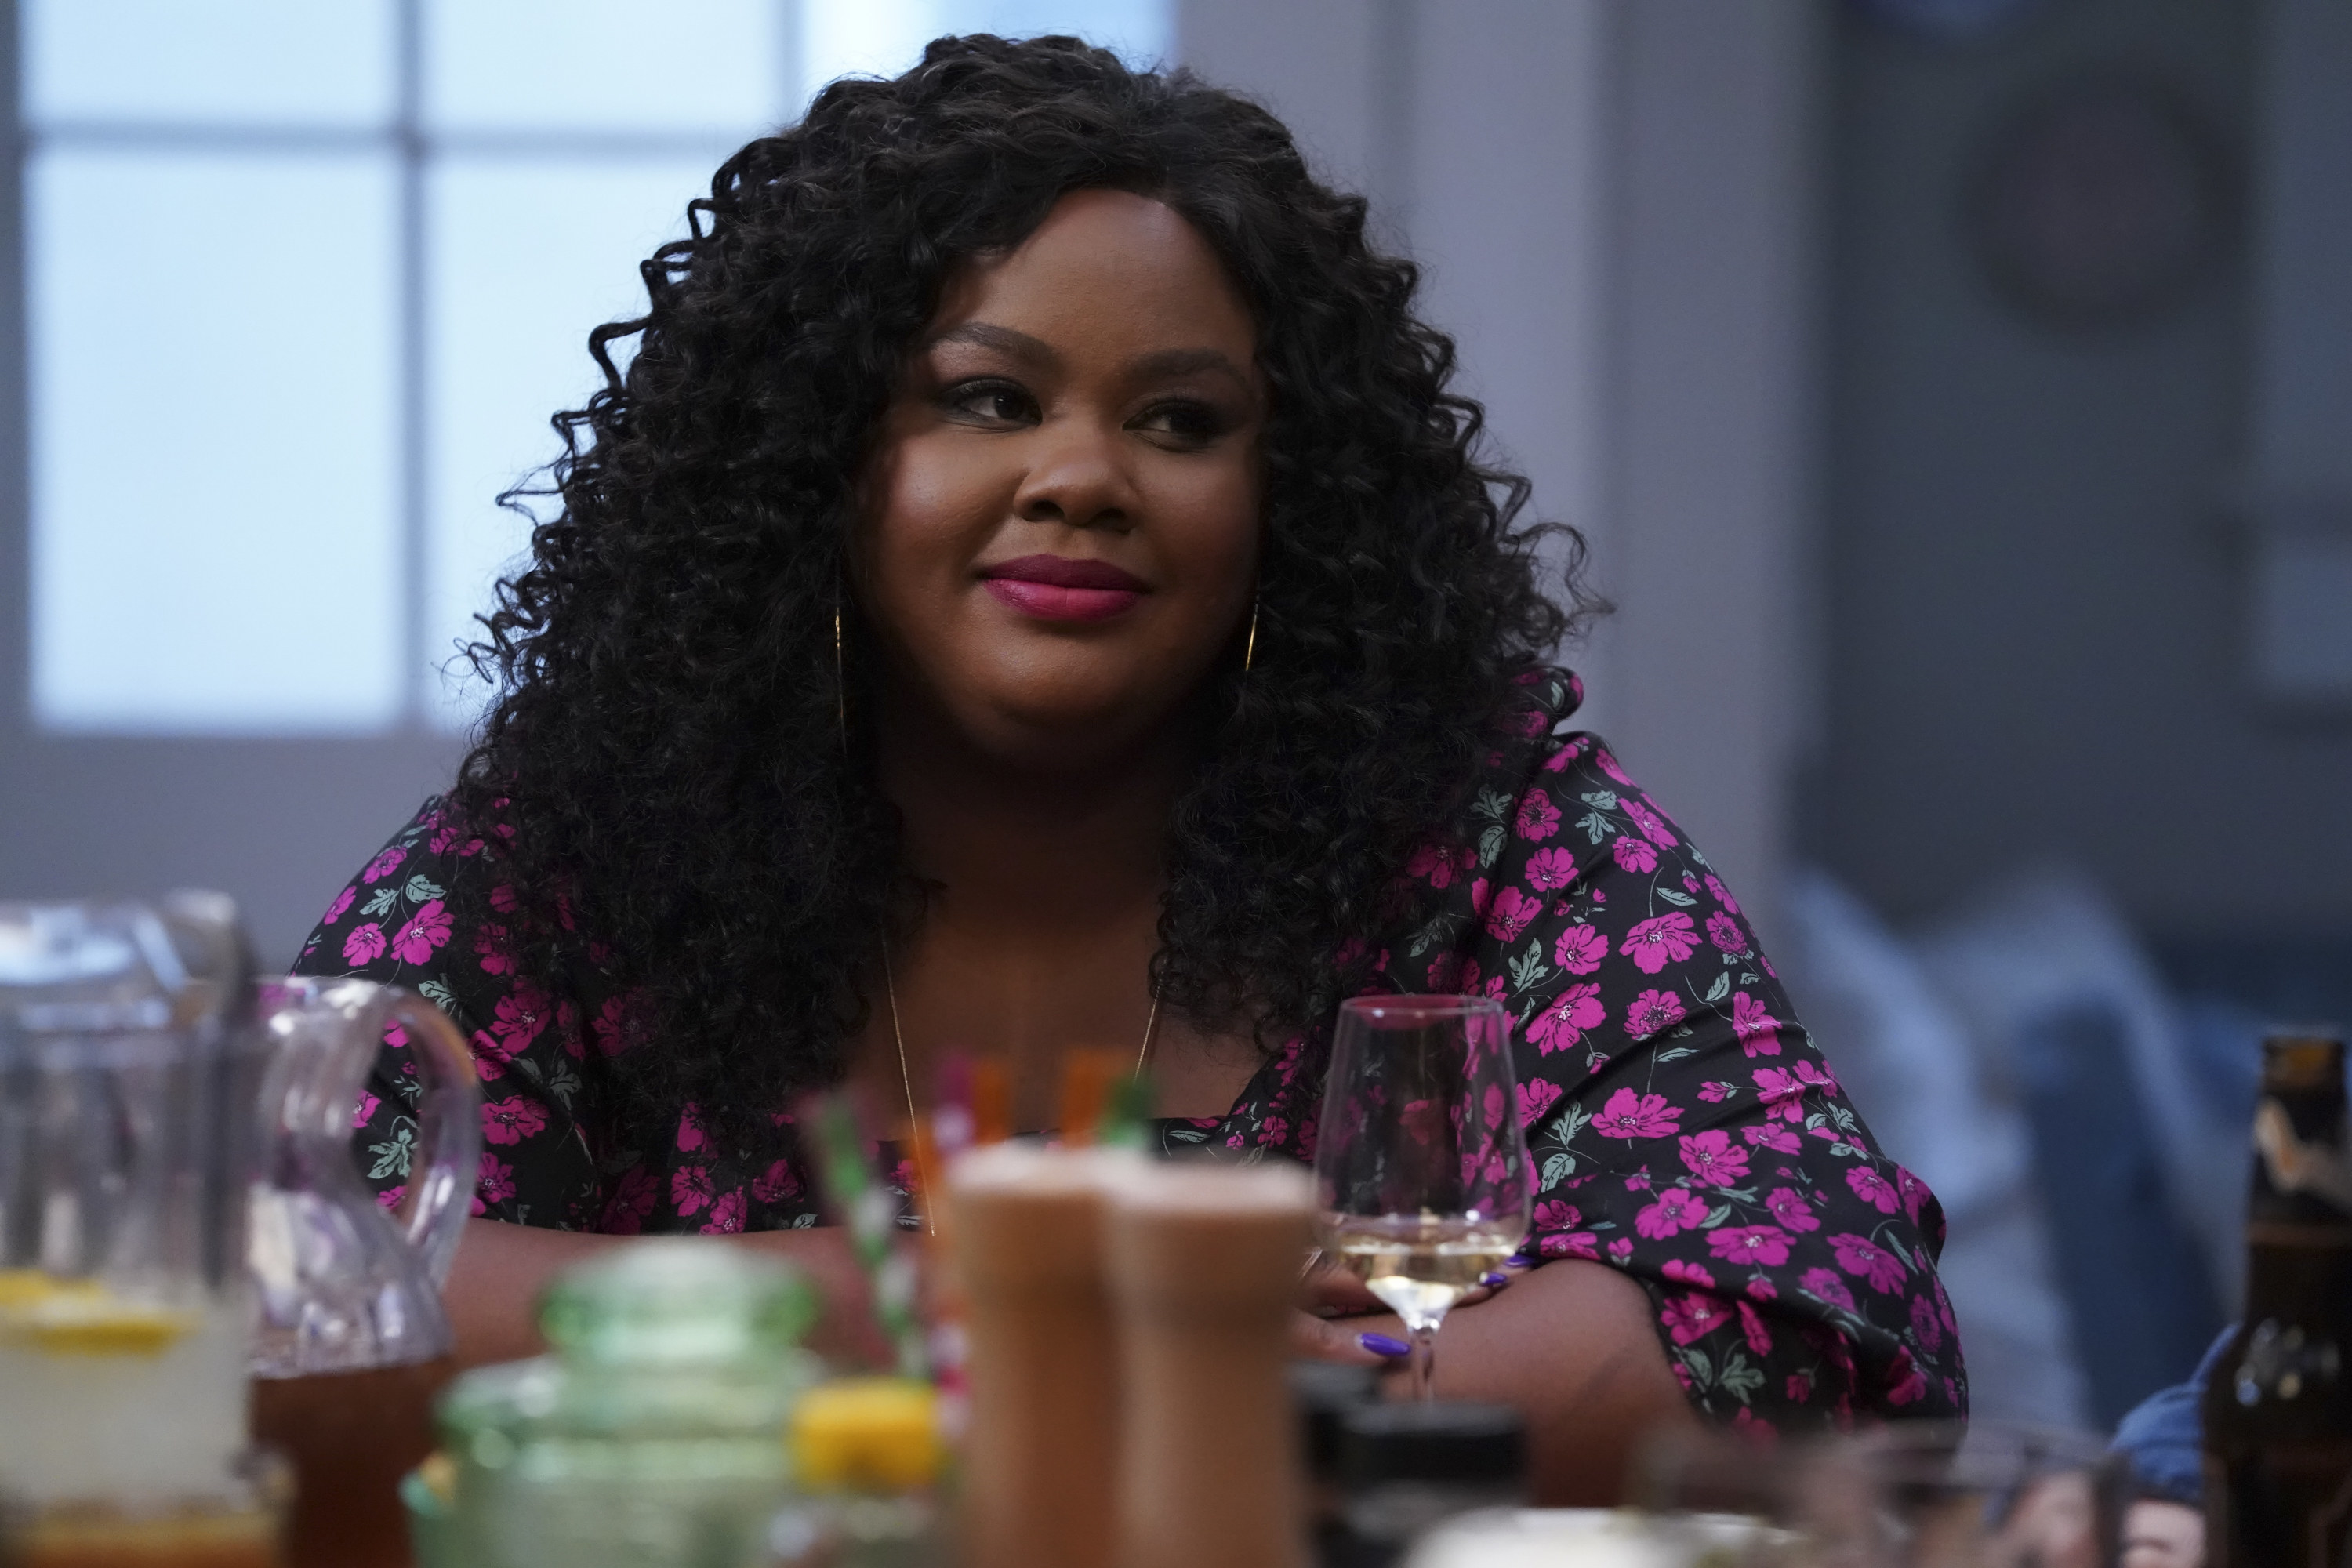 Nicole Byer sitting at a table with a glass of wine